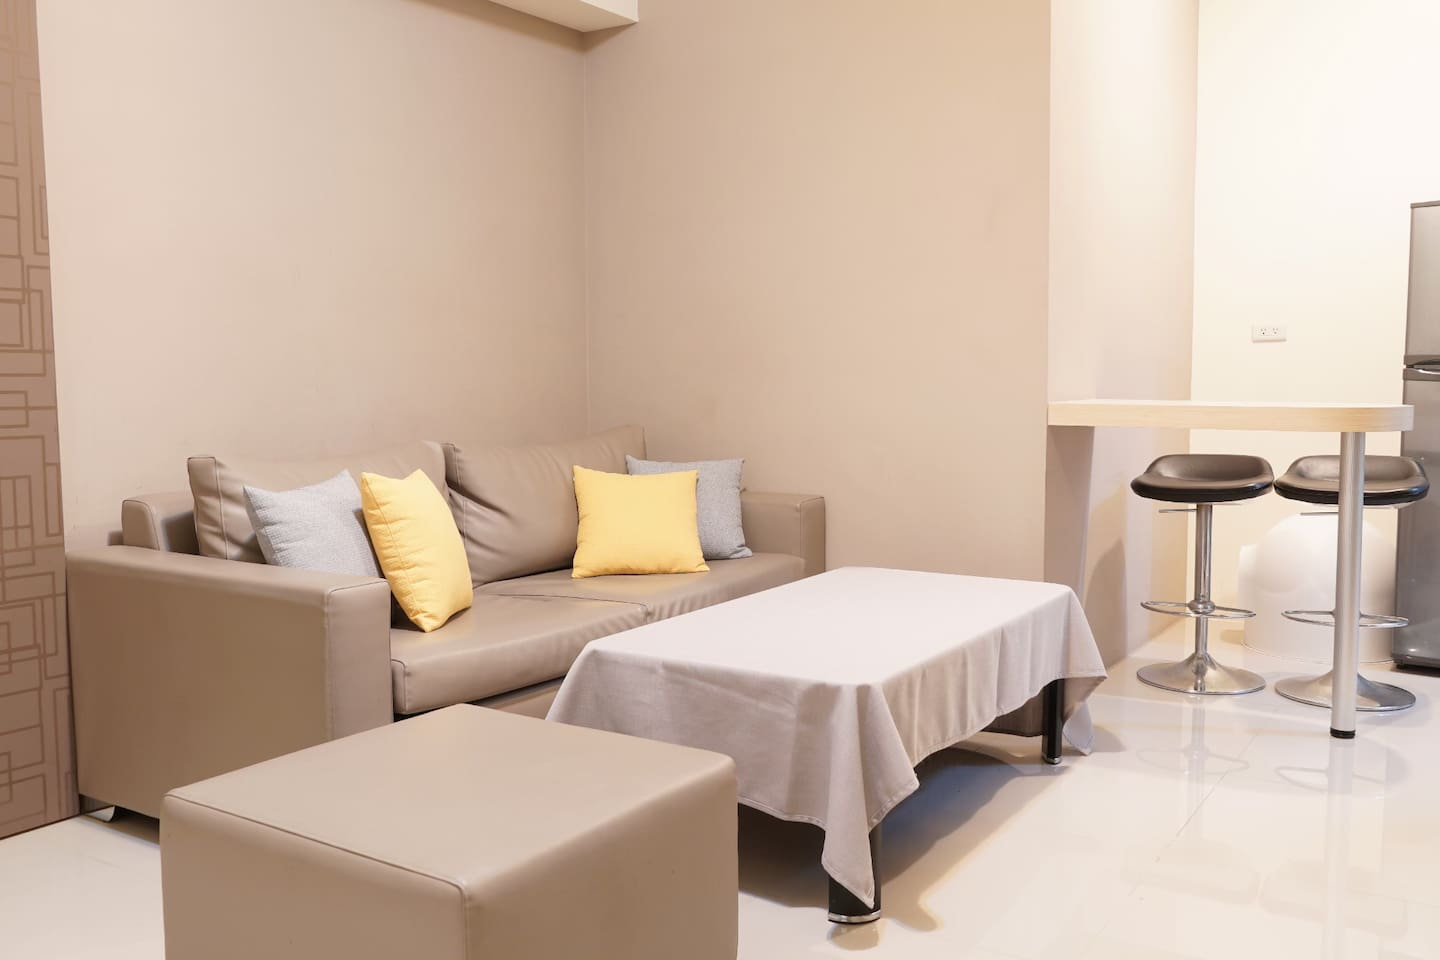 The living room is approximately 21m², with a bar table and two high chairs.